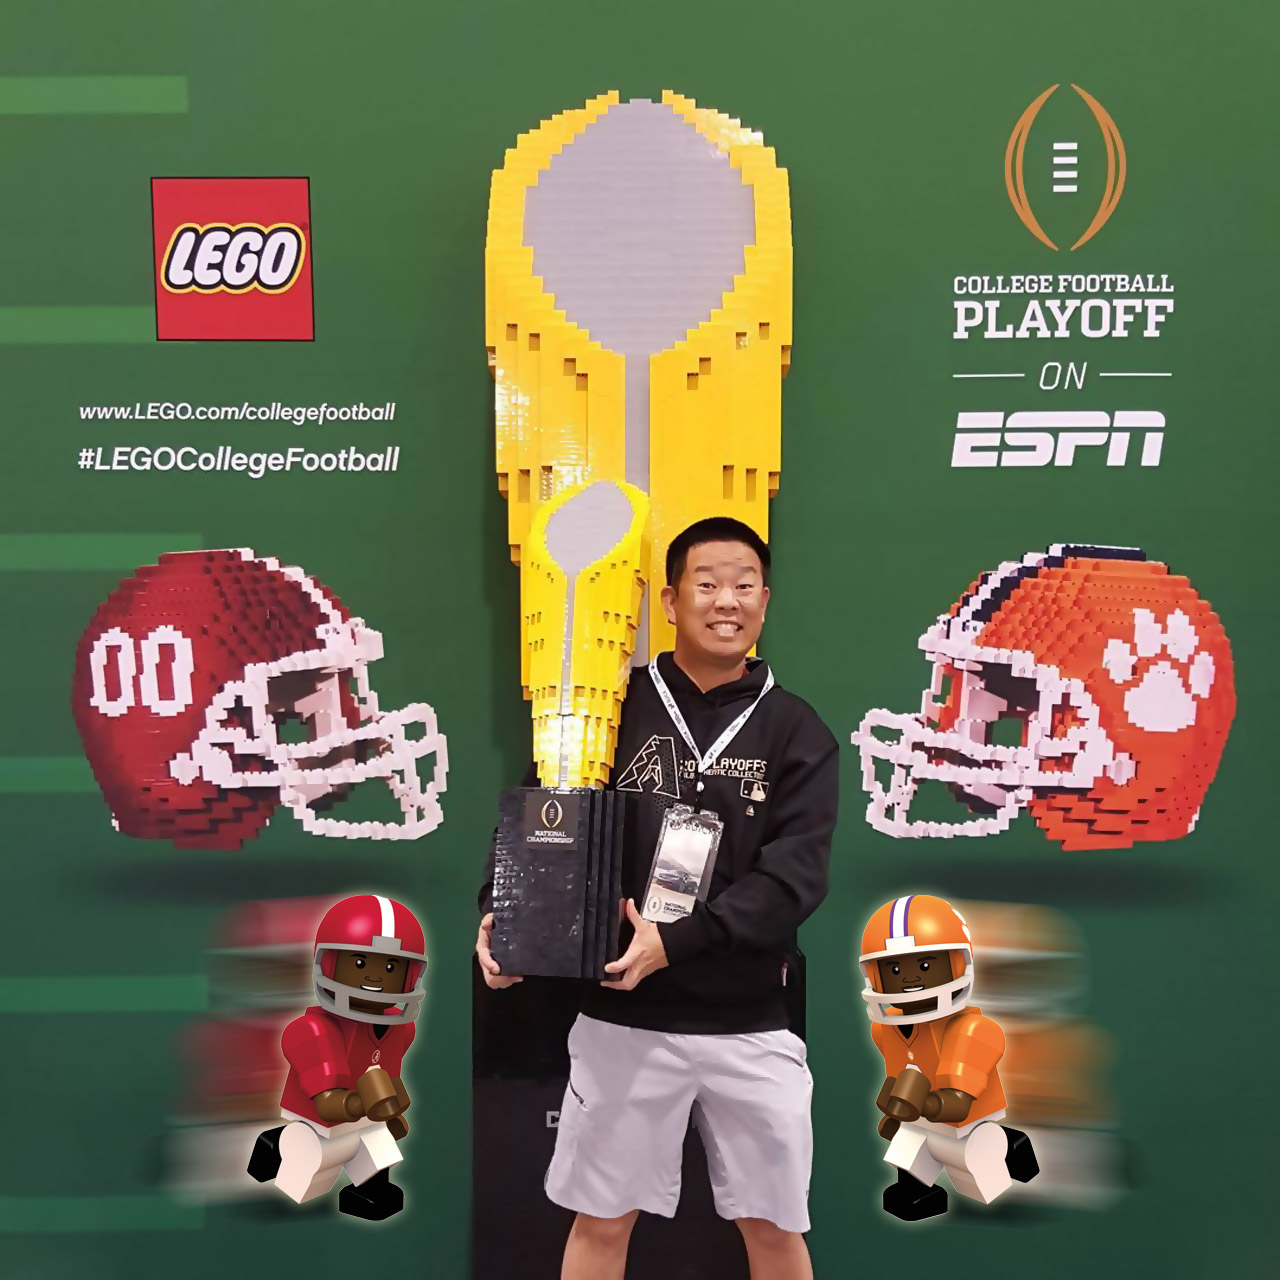 CFP National Championship trophy made of LEGO bricks